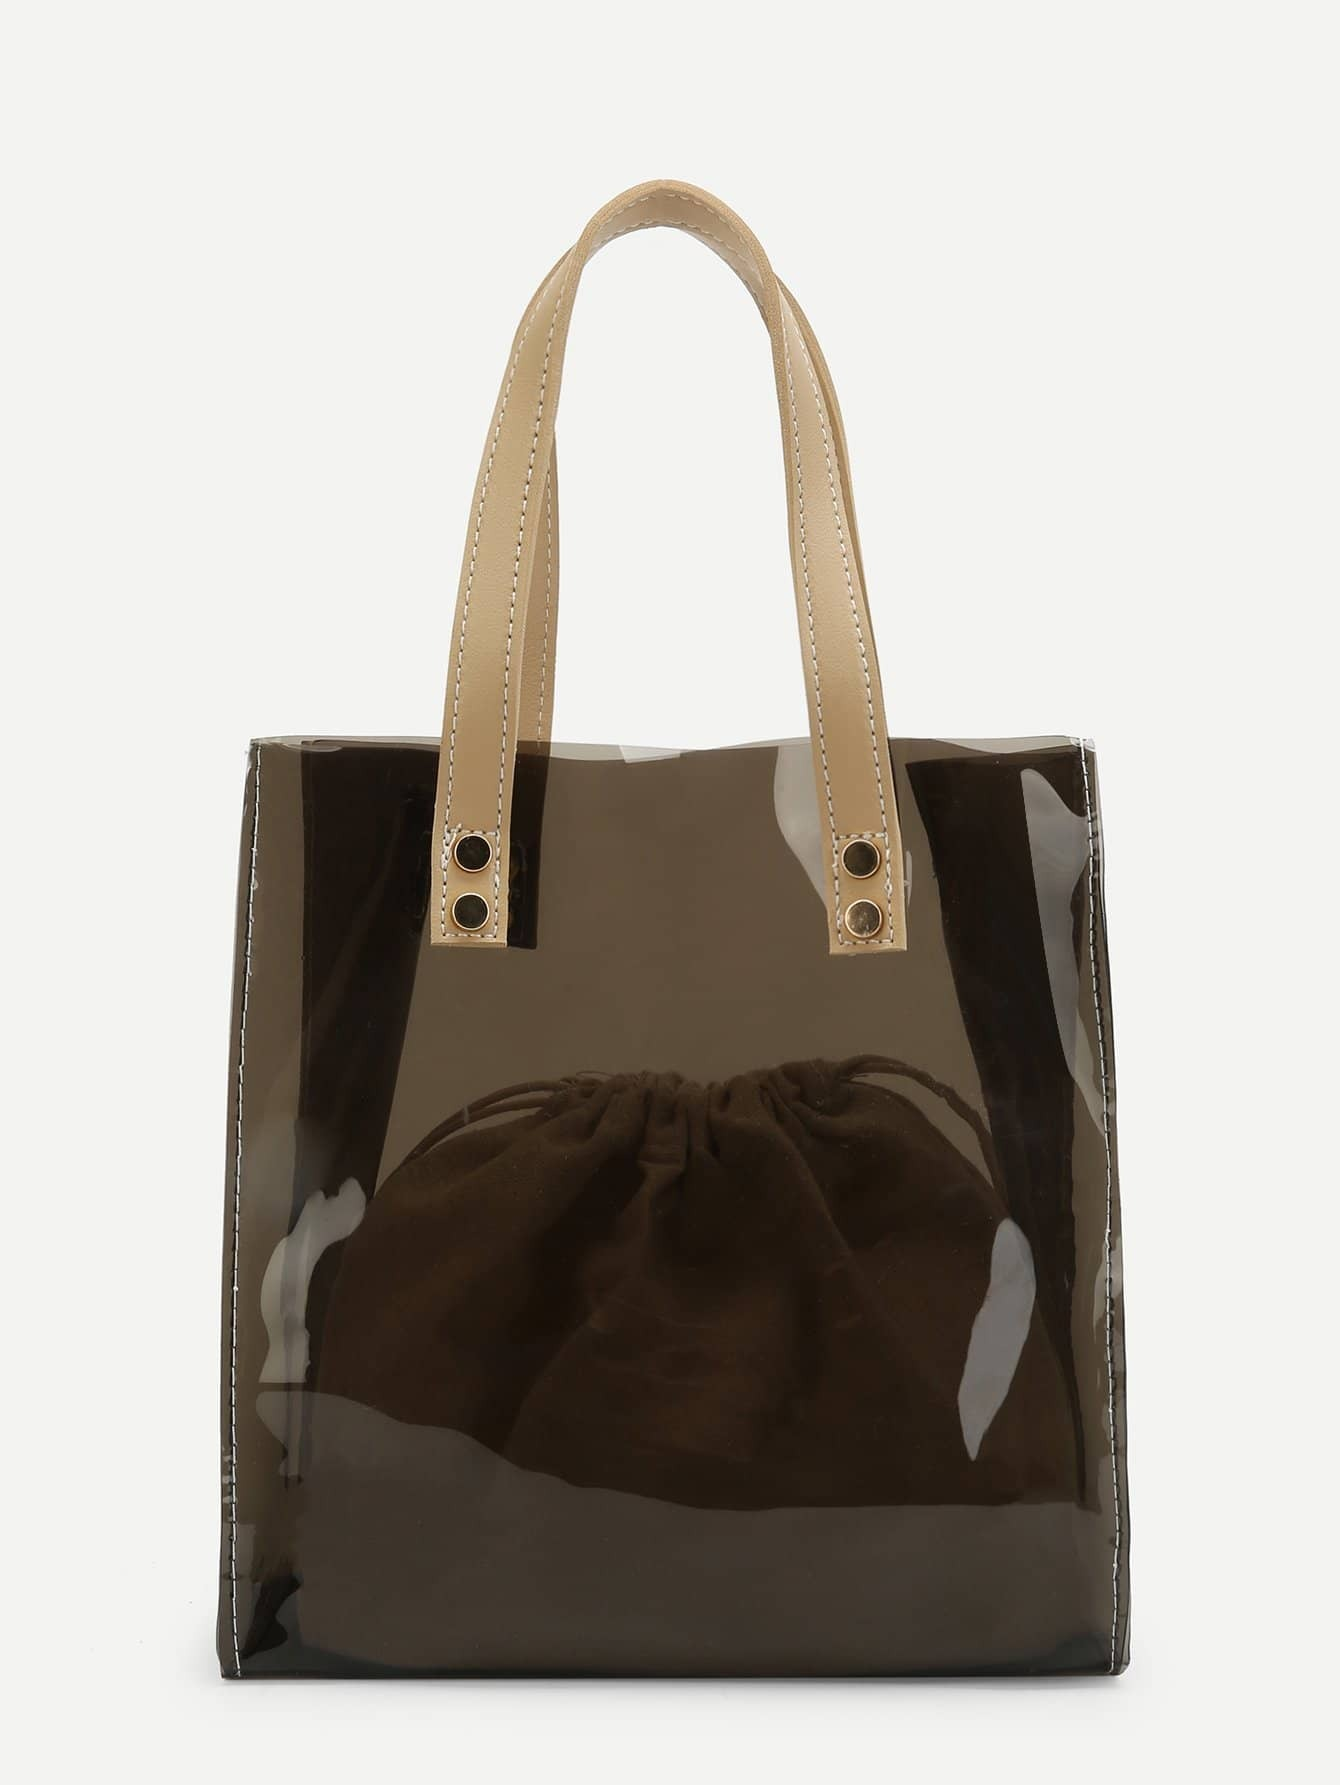 PVC Tote Bag With Inner Pouch net tote bag with inner pouch